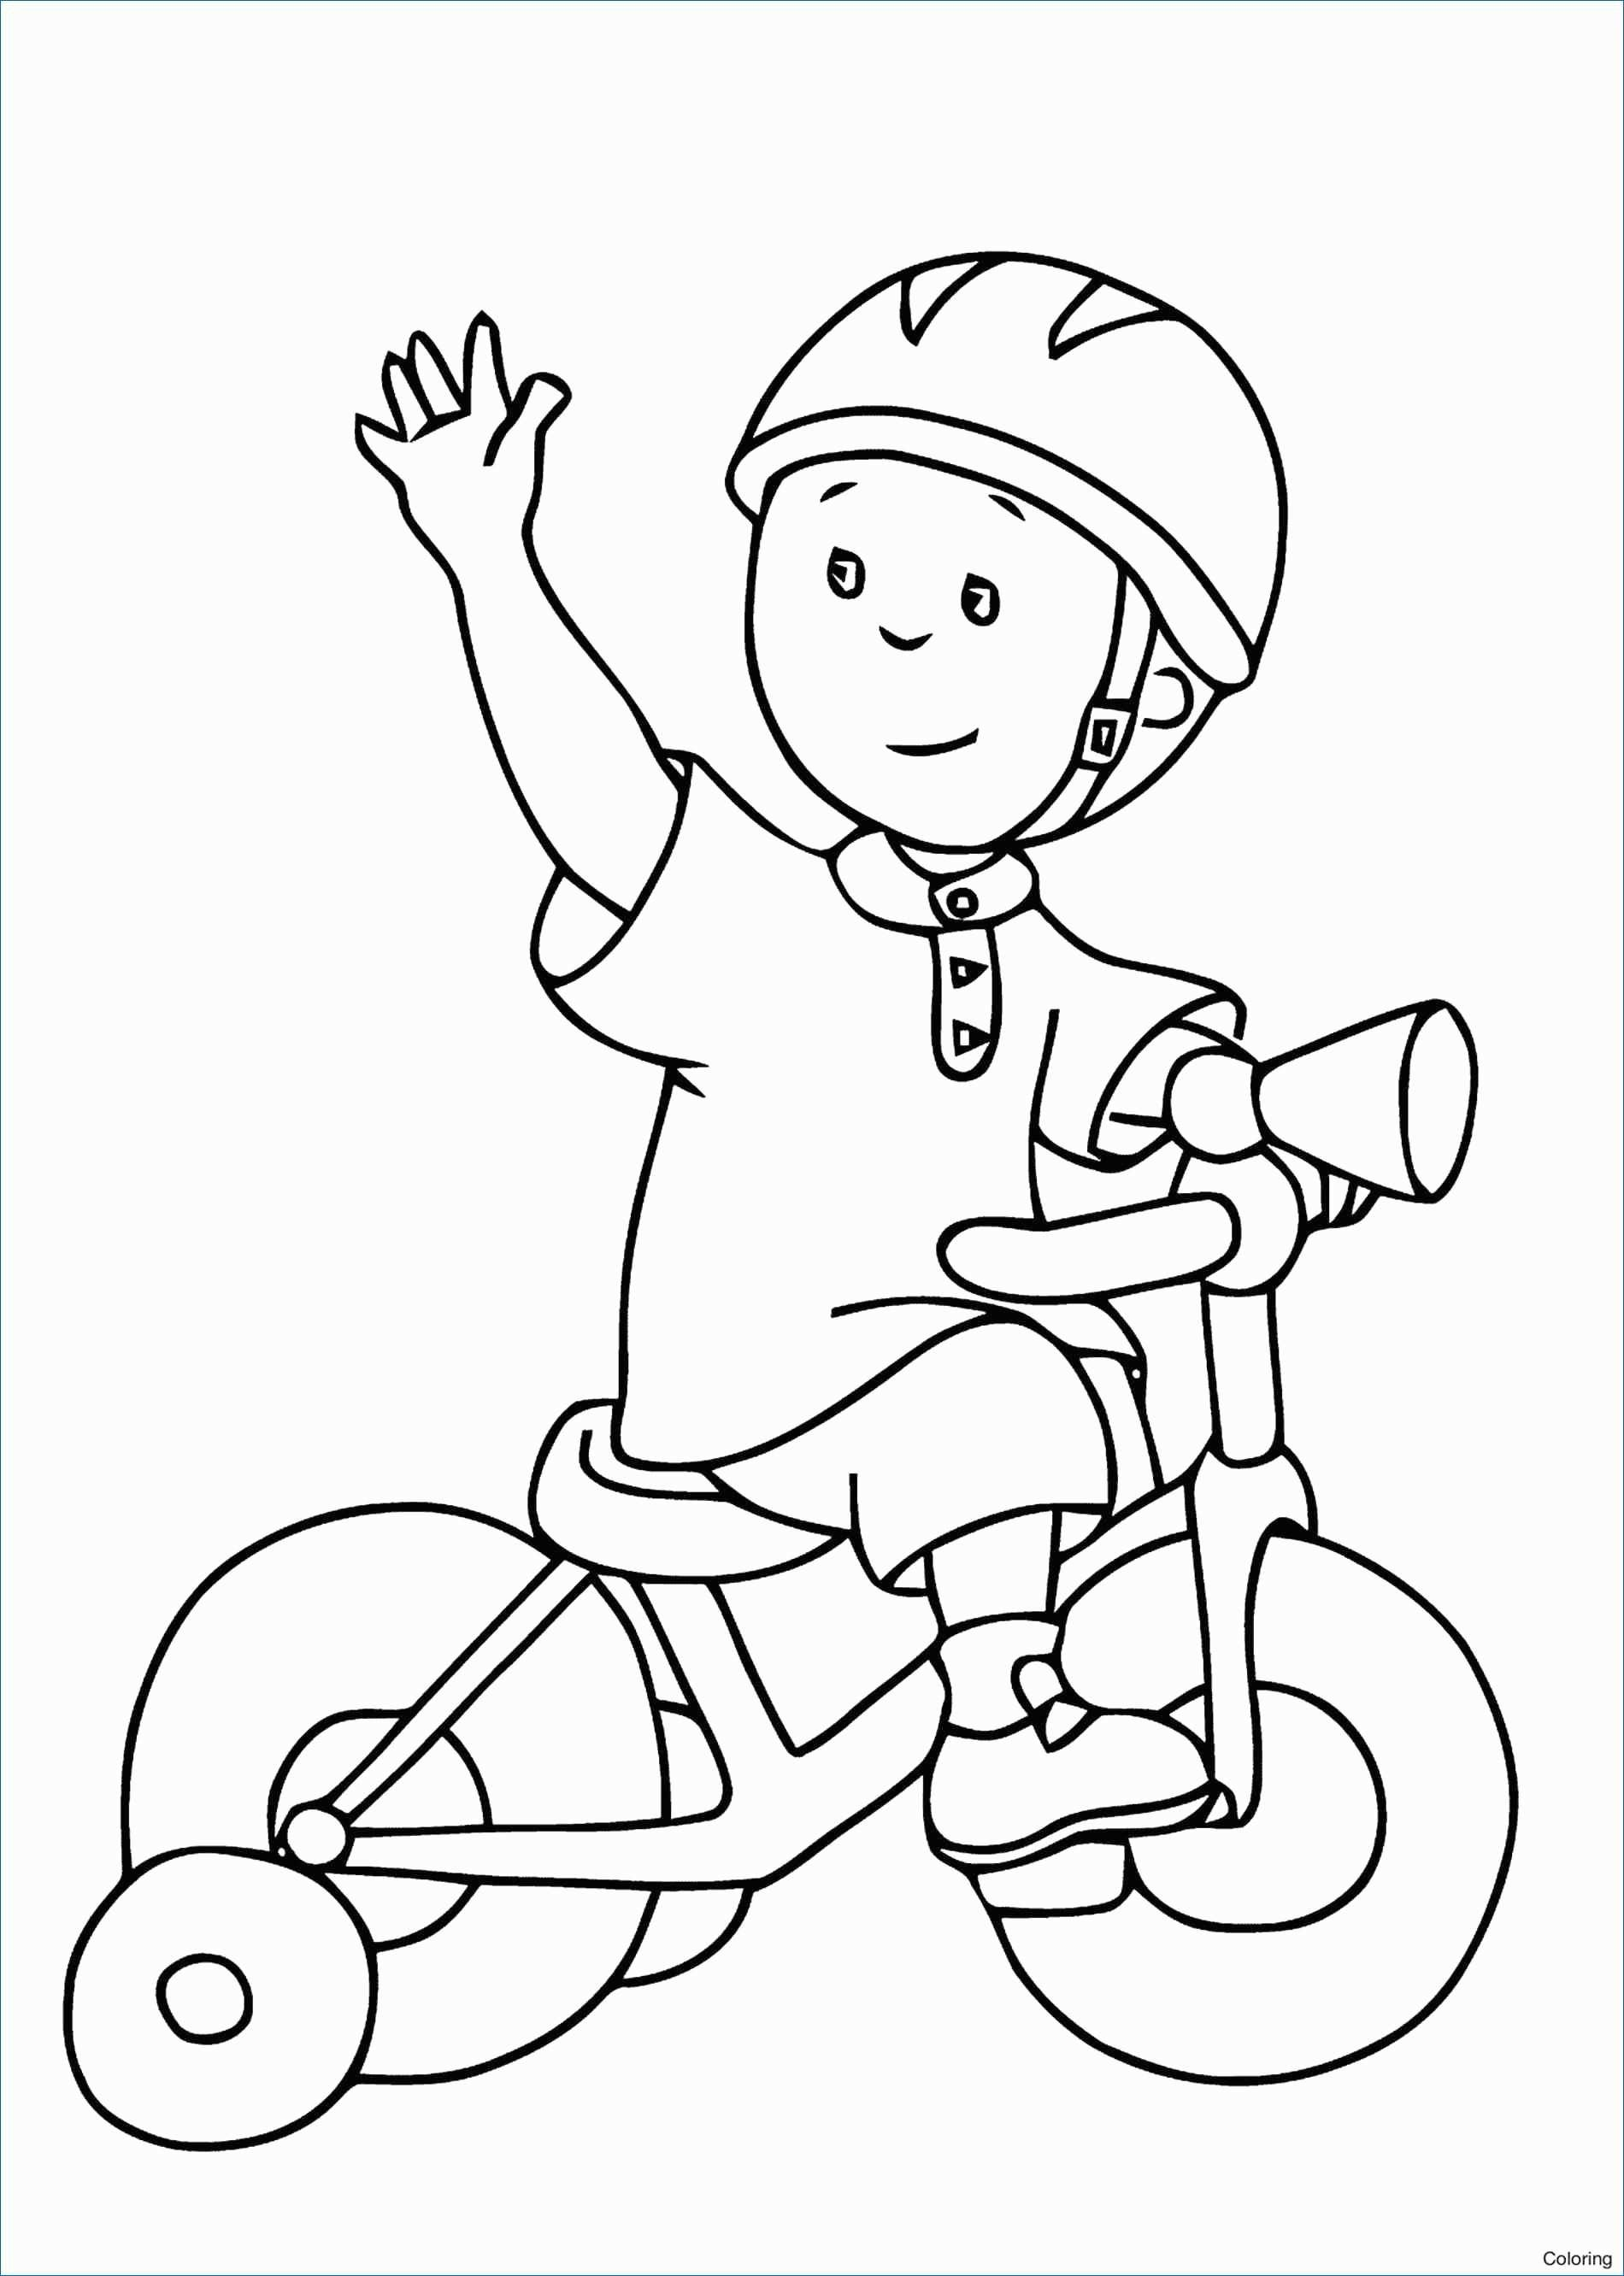 Elegant Image Of Bike Coloring Pages Kids Printable Coloring